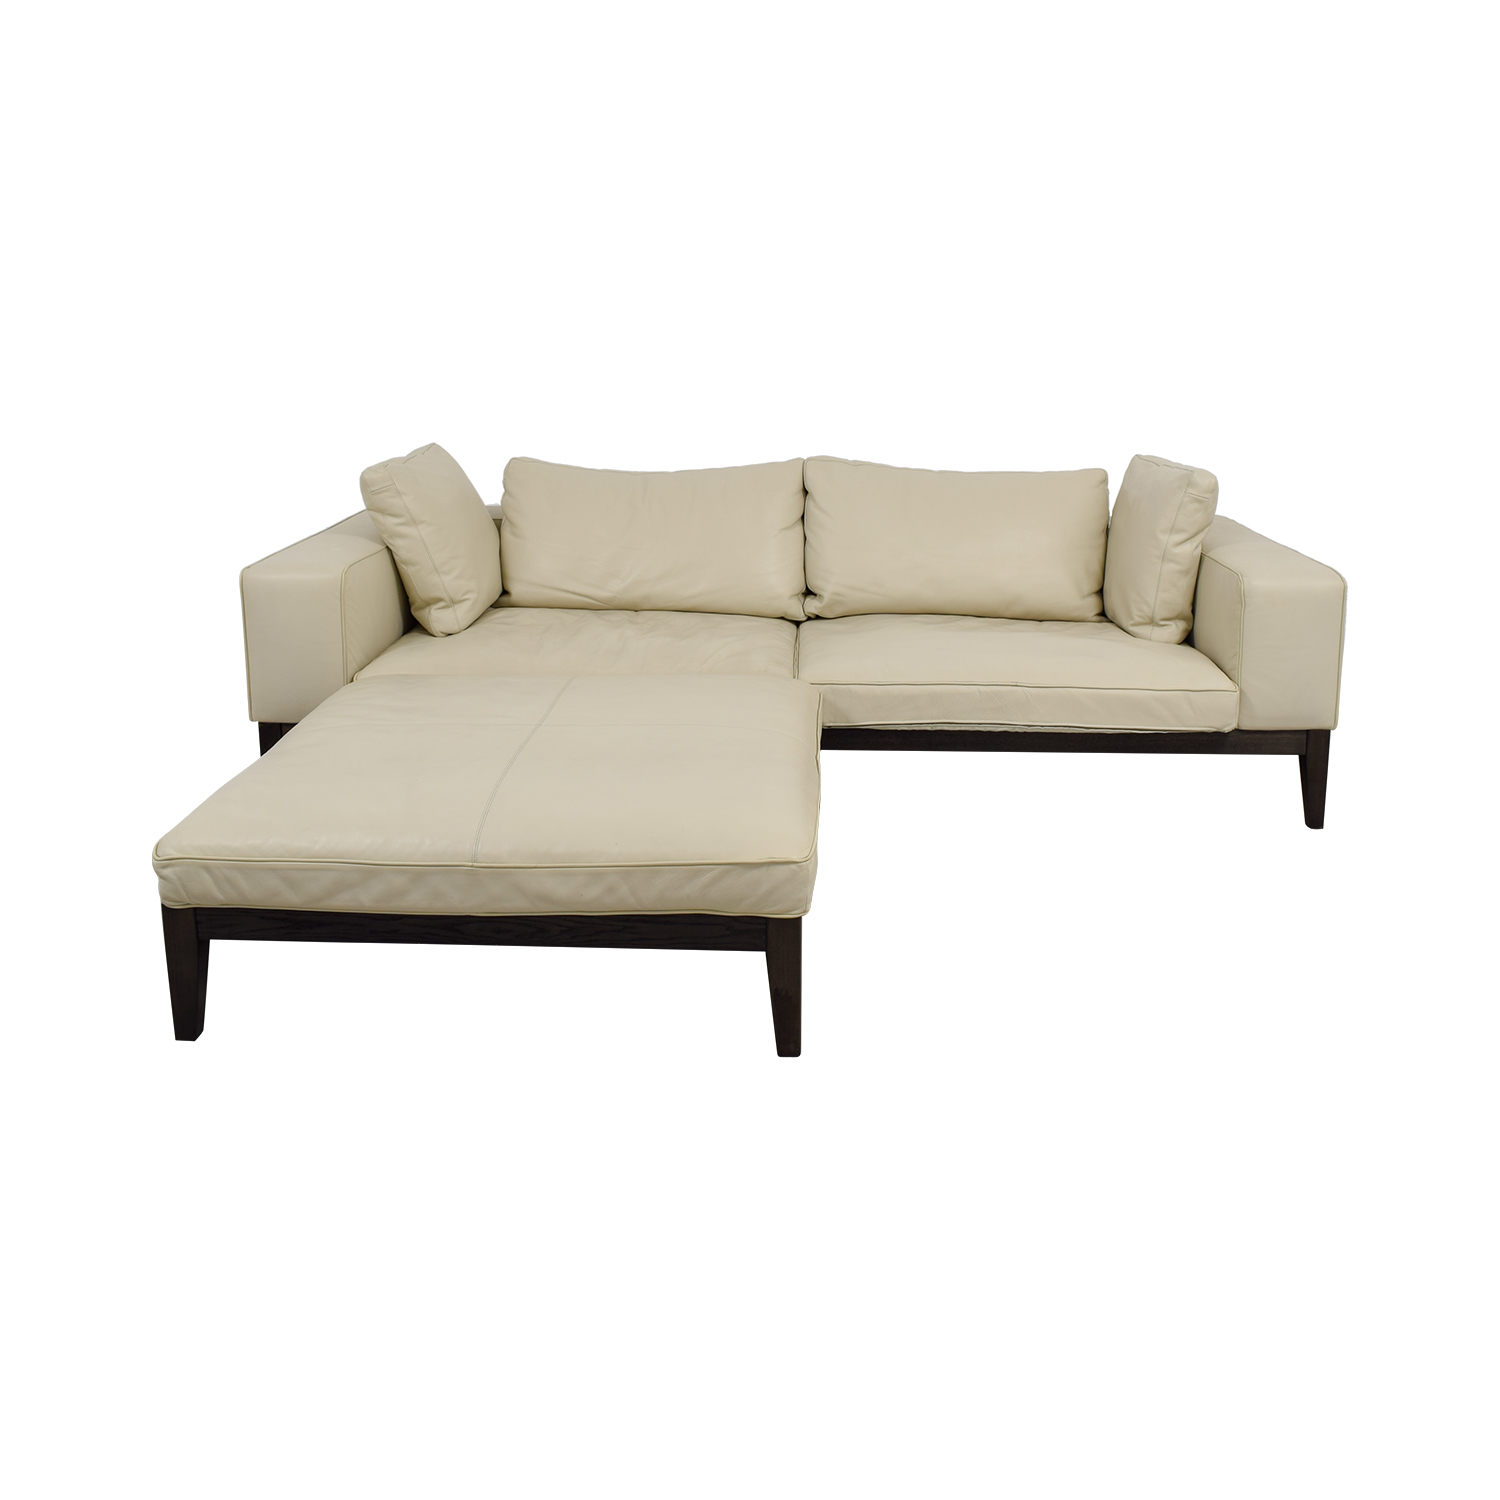 White Leather Couch 90 Off Tree Tree Contemporary Italian Off White Leather Couch With Large Chaise Ottoman Sofas